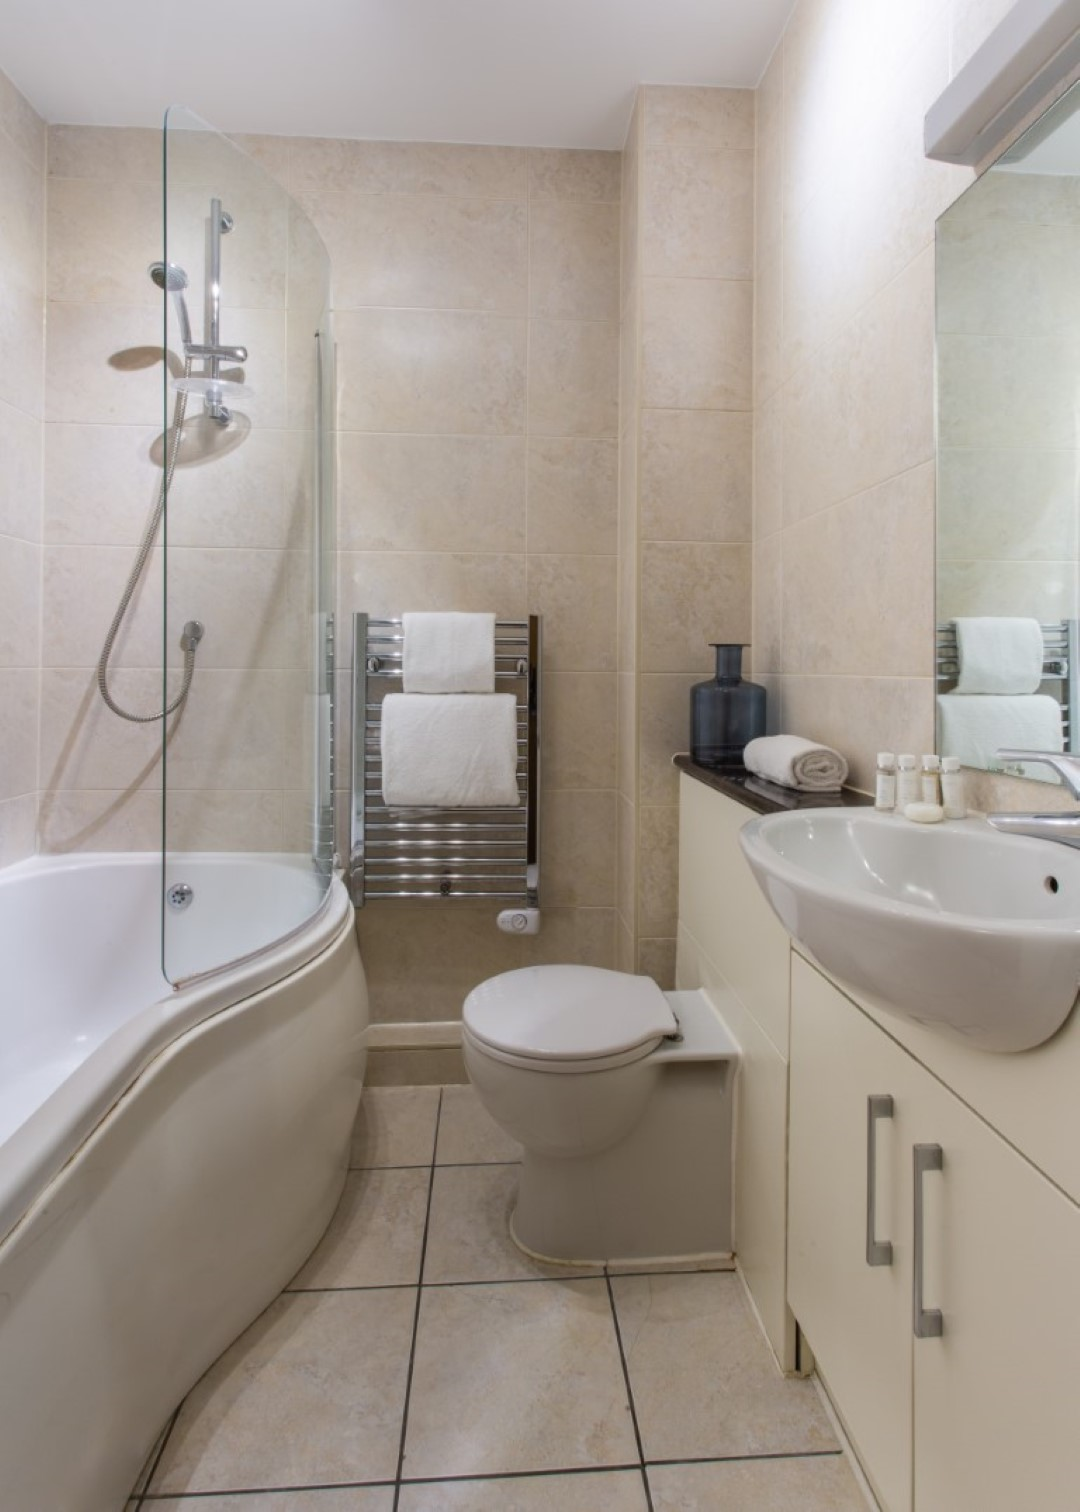 Bathroom at Exchange Buildings Apartments, Centre, Bournemouth